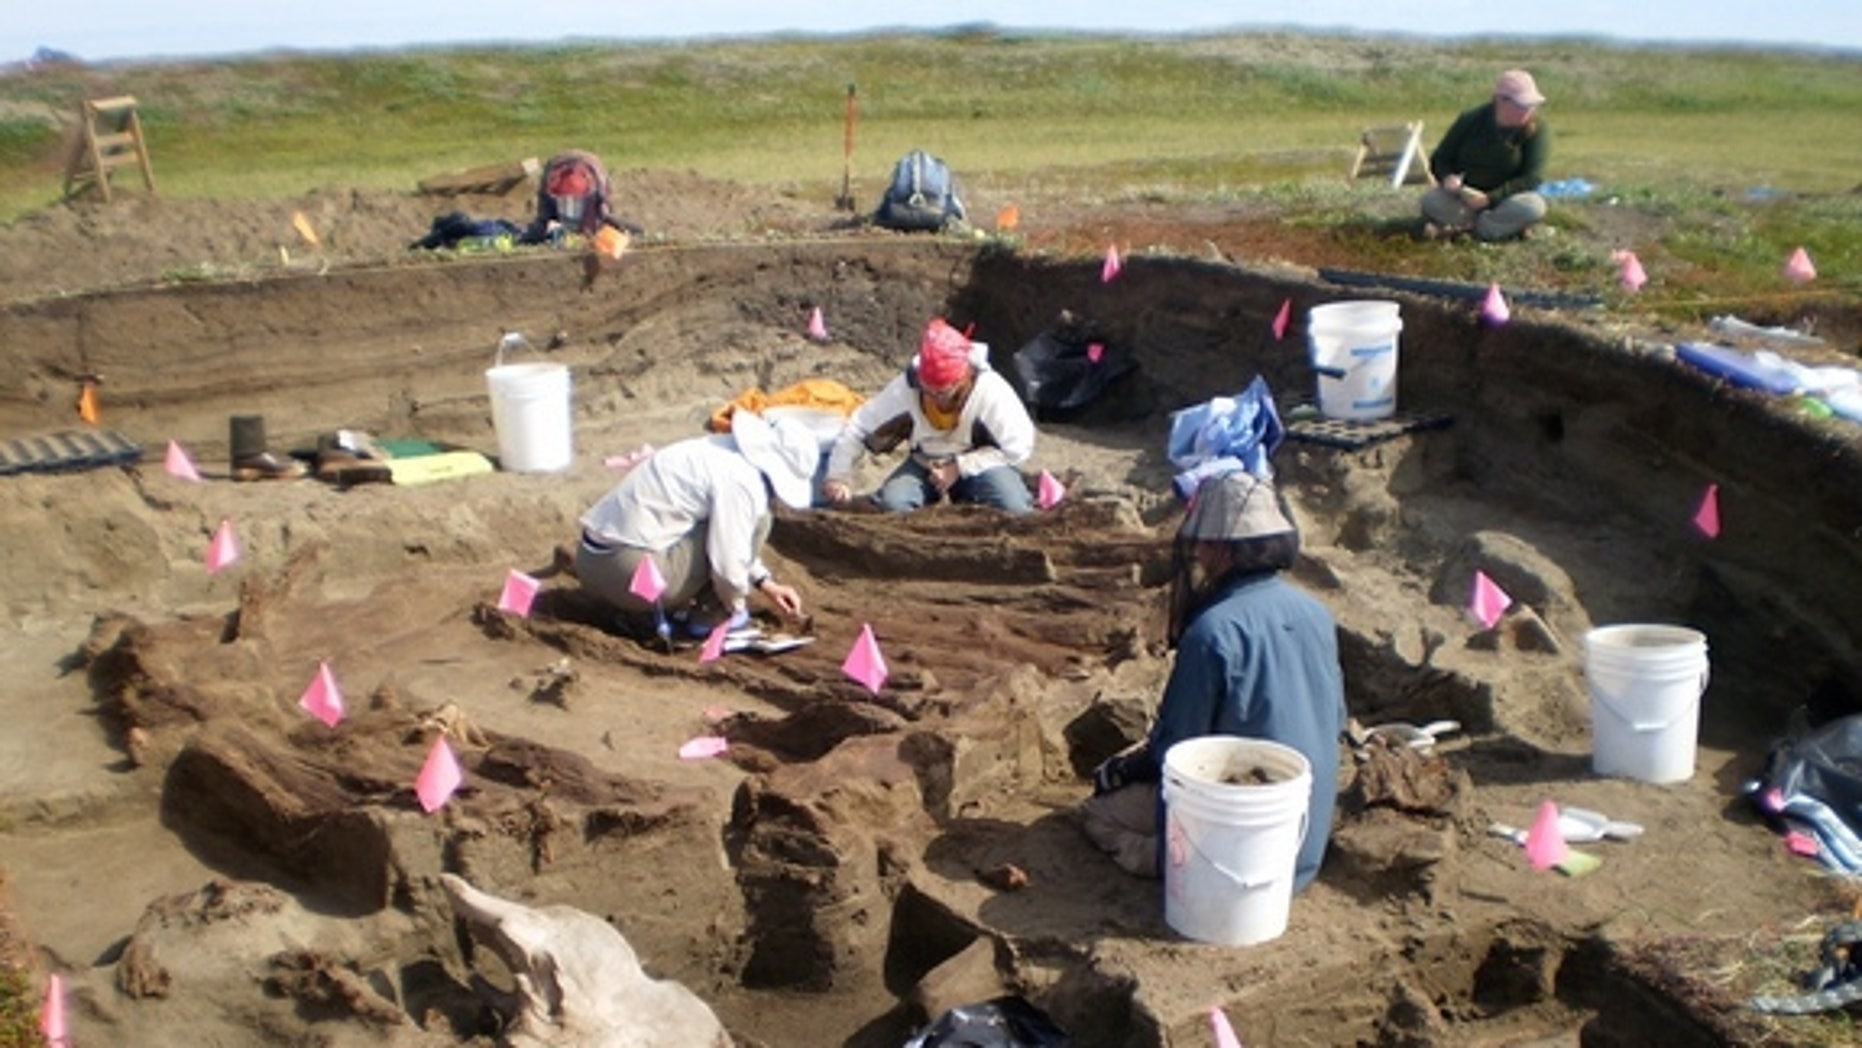 Archaeologists working at the Rising Whale site at Cape Espenberg, Alaska,  have discovered several artifacts that were imported from East Asia.